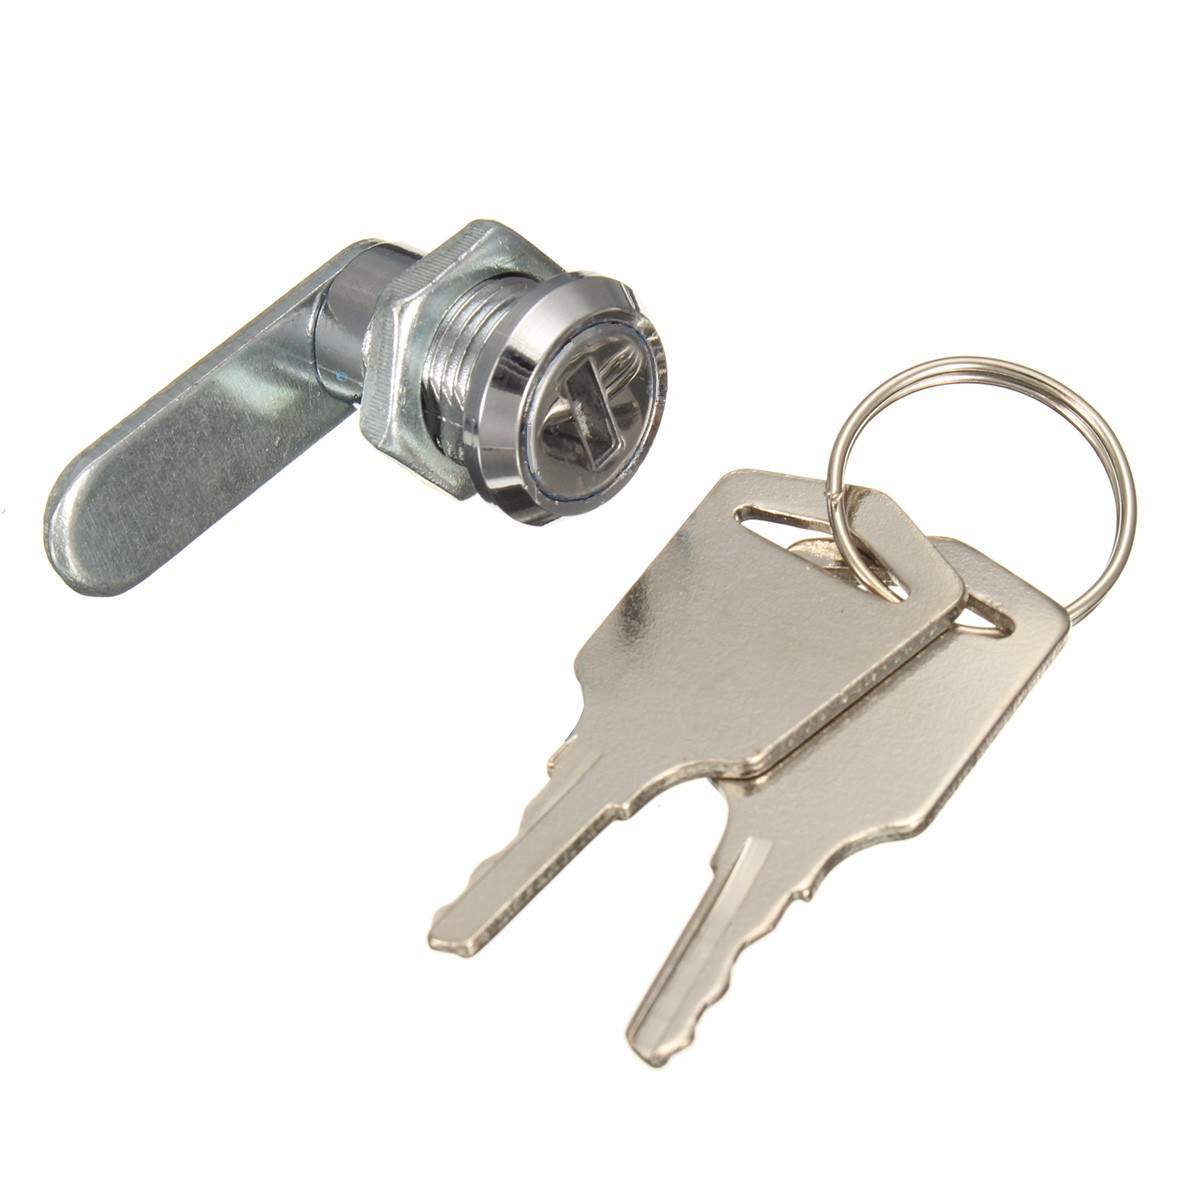 Kitchen Cabinet Cam Locks 16mm Keyed Alike Cam Lock For Filing Cabinet Mailbox